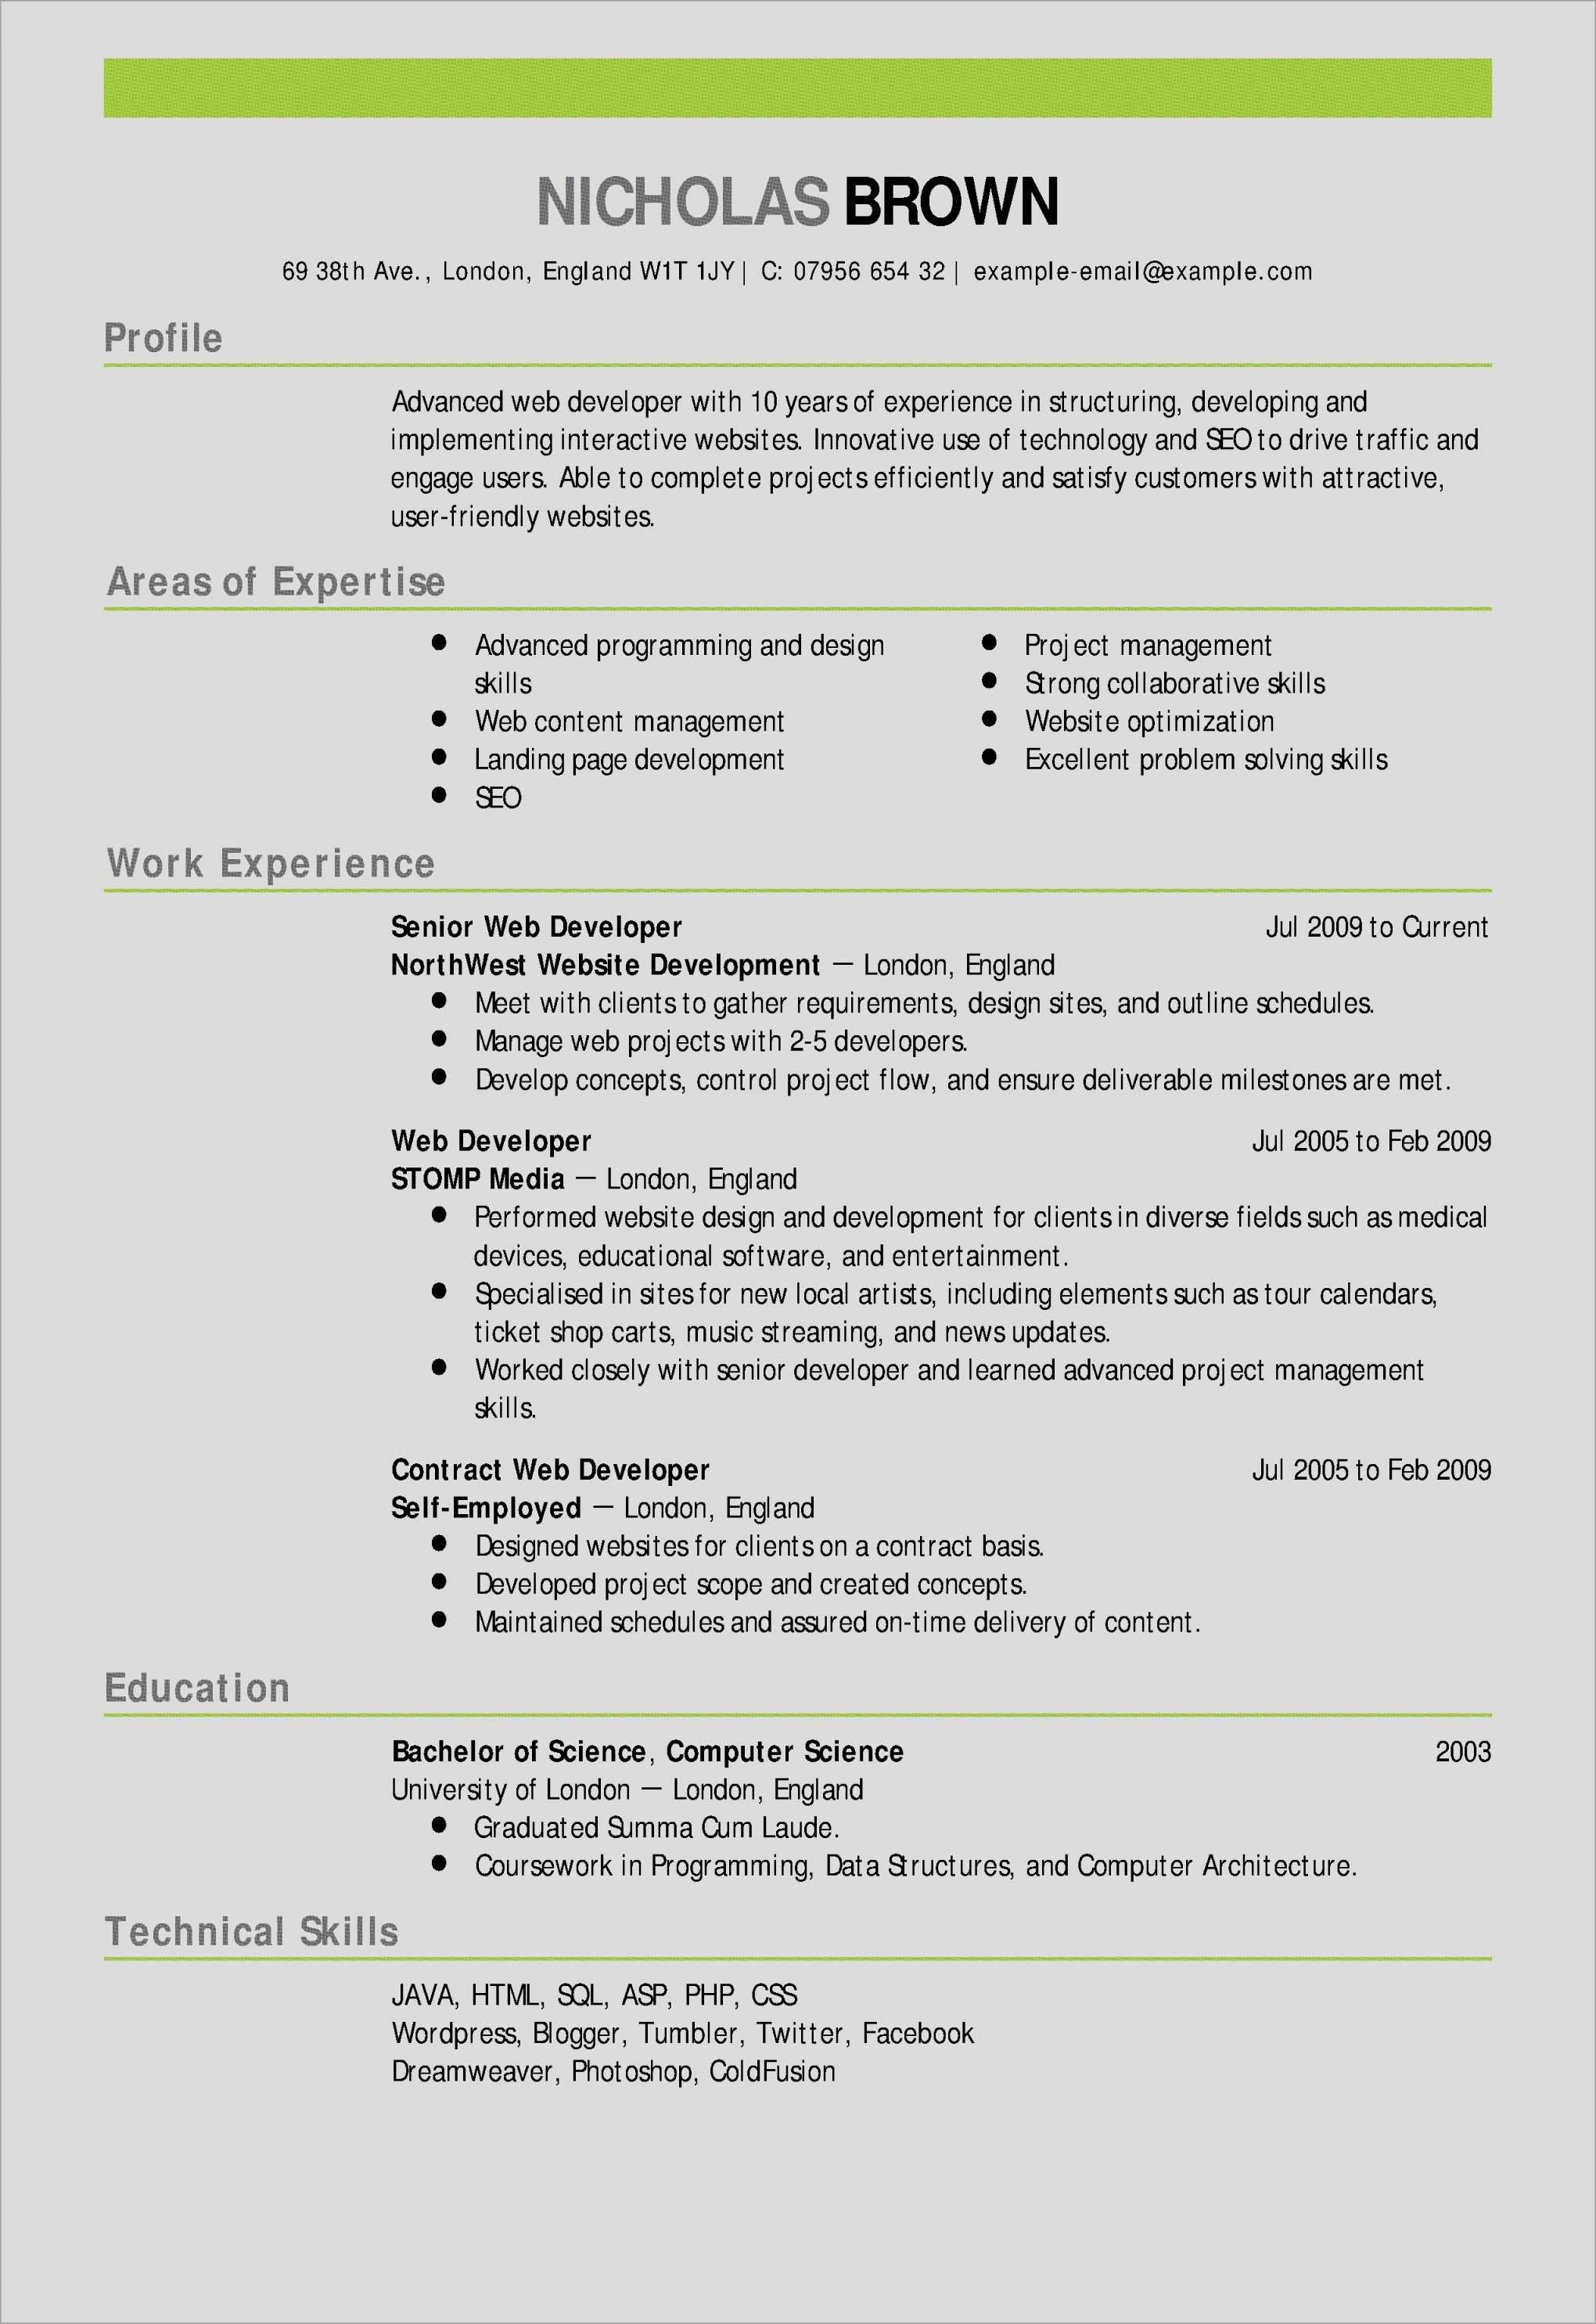 Resume Template Libreoffice Resume Word New Awesome Examples Resumes